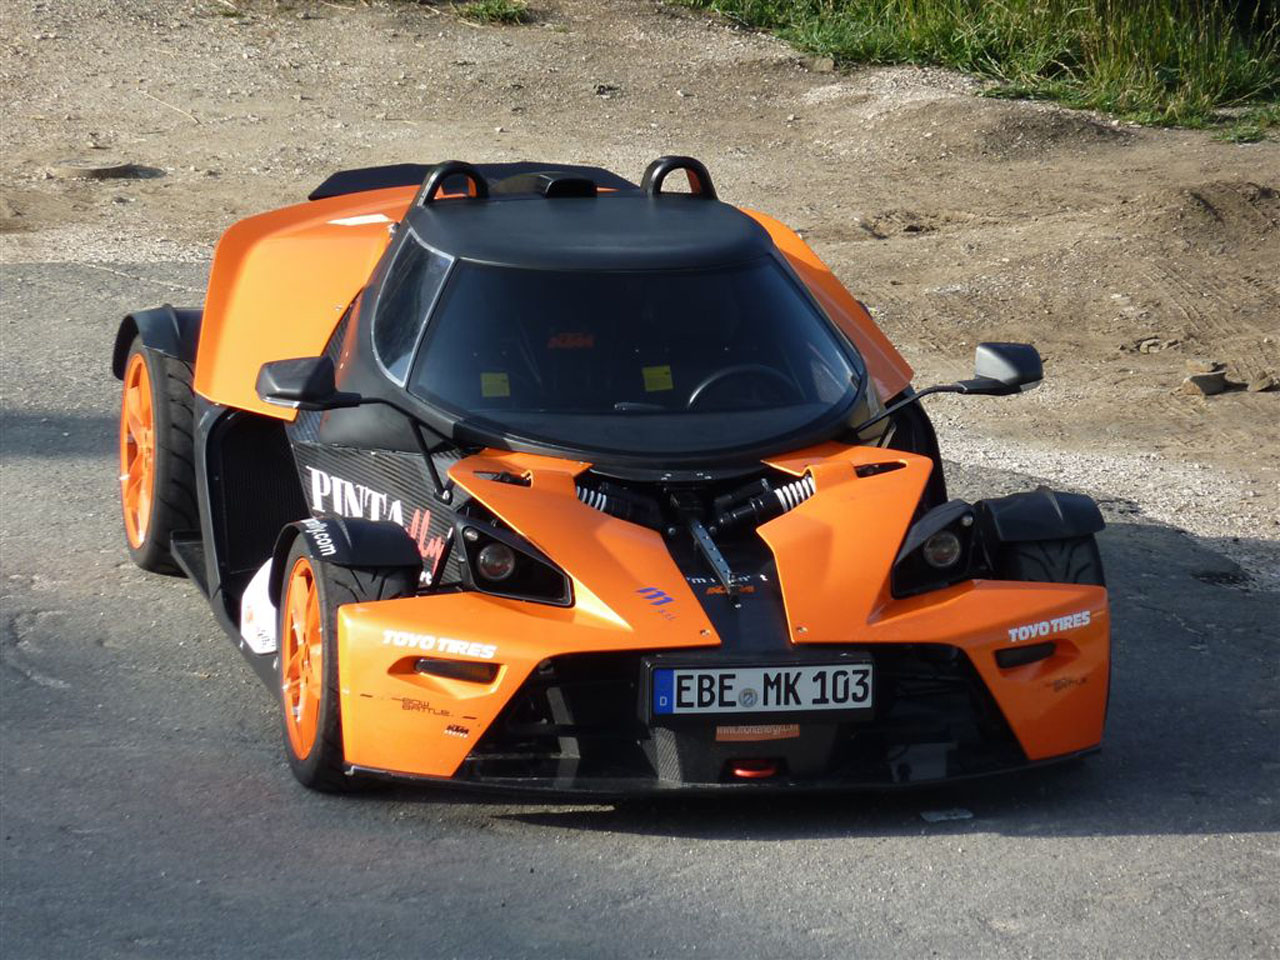 Ktm x bow monte carlo by montenergy photo gallery autoblog - X bow ktm ...